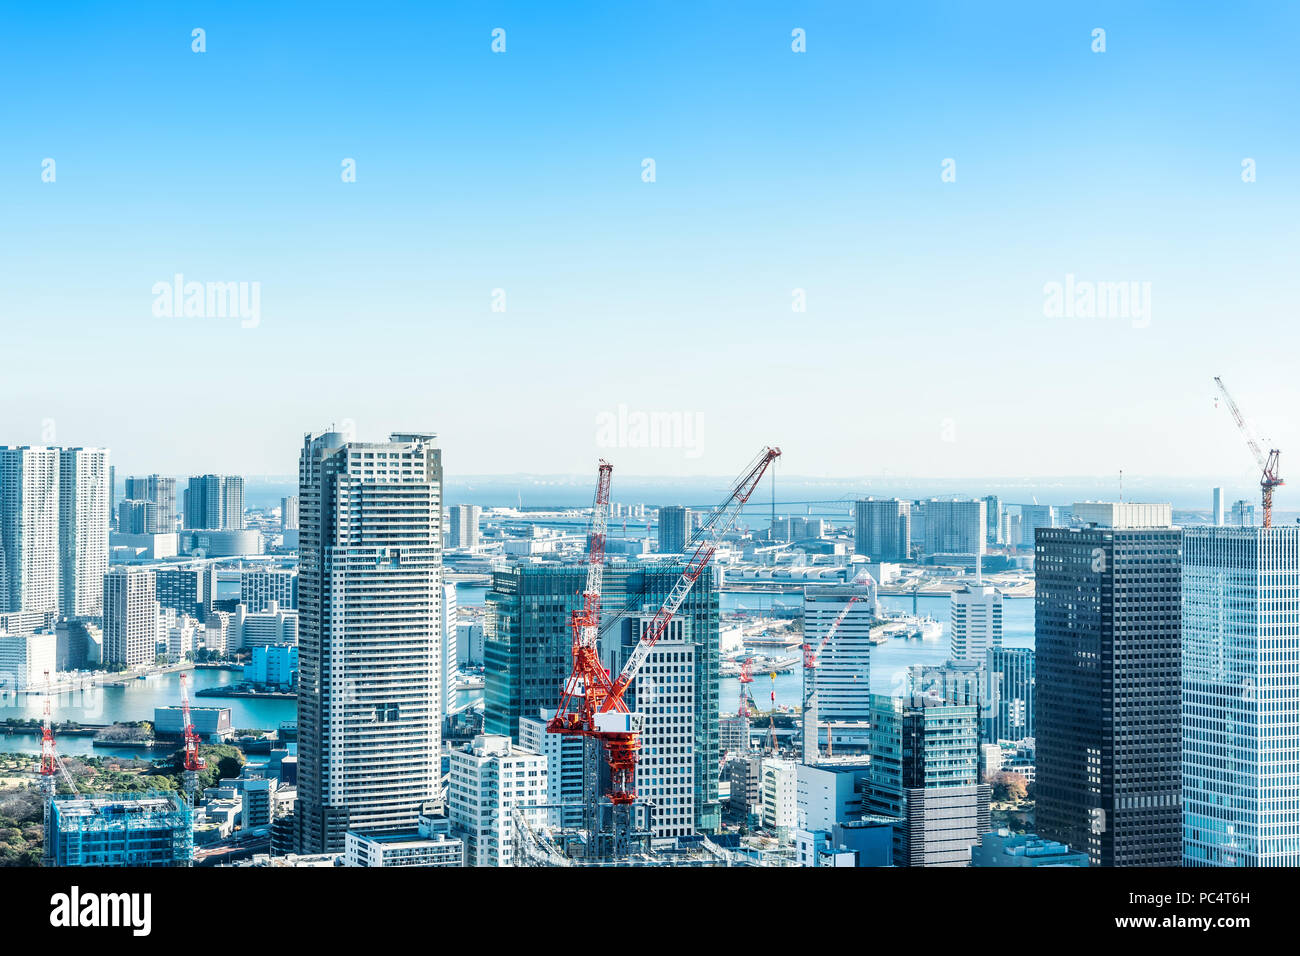 Asia Business concept for real estate and corporate construction - panoramic modern city skyline bird eye aerial view with crane near tokyo tower unde - Stock Image